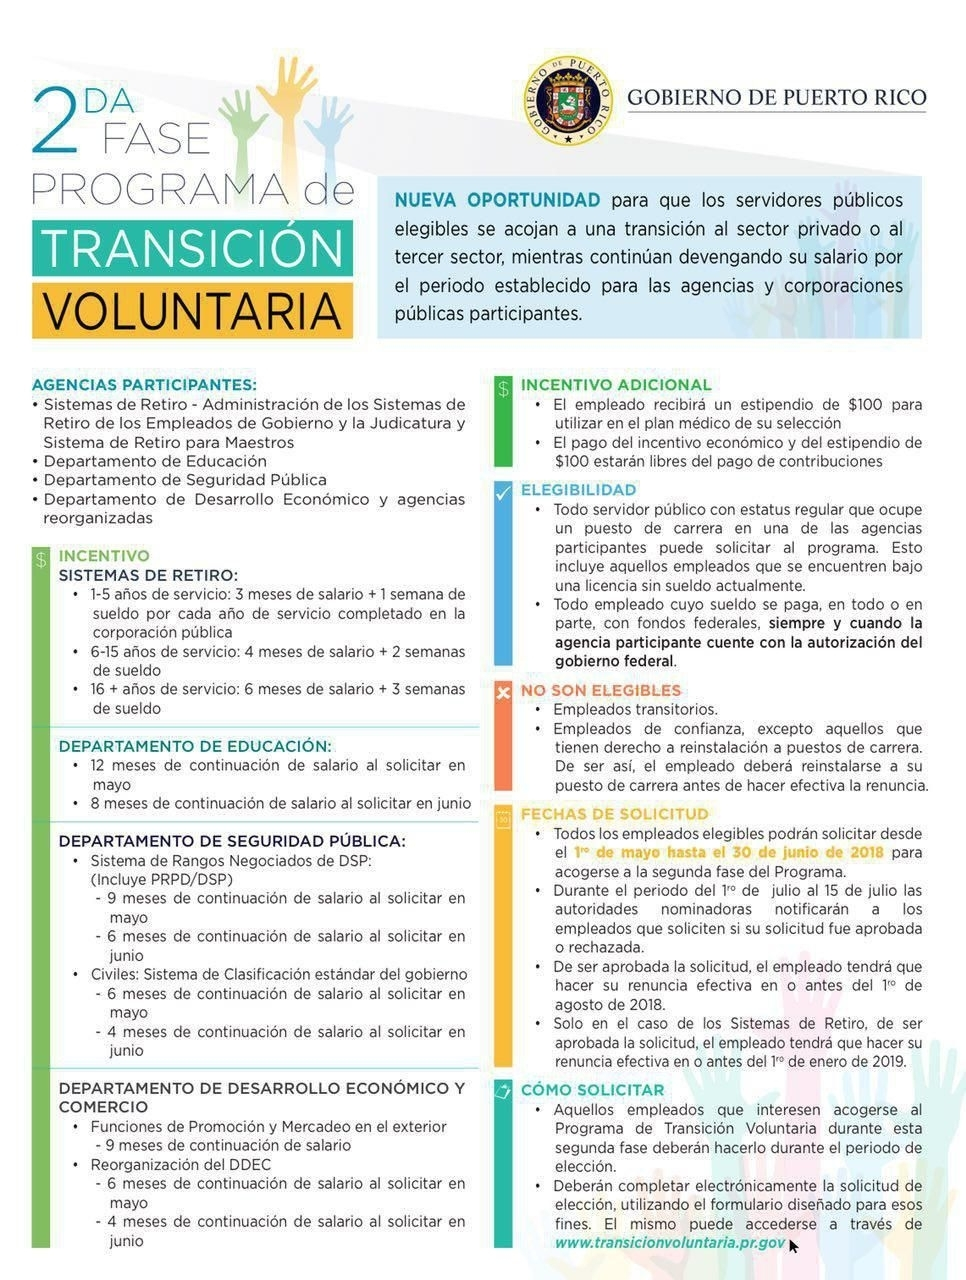 Pin By Ivette Colon On Libreta Profesional (With Images